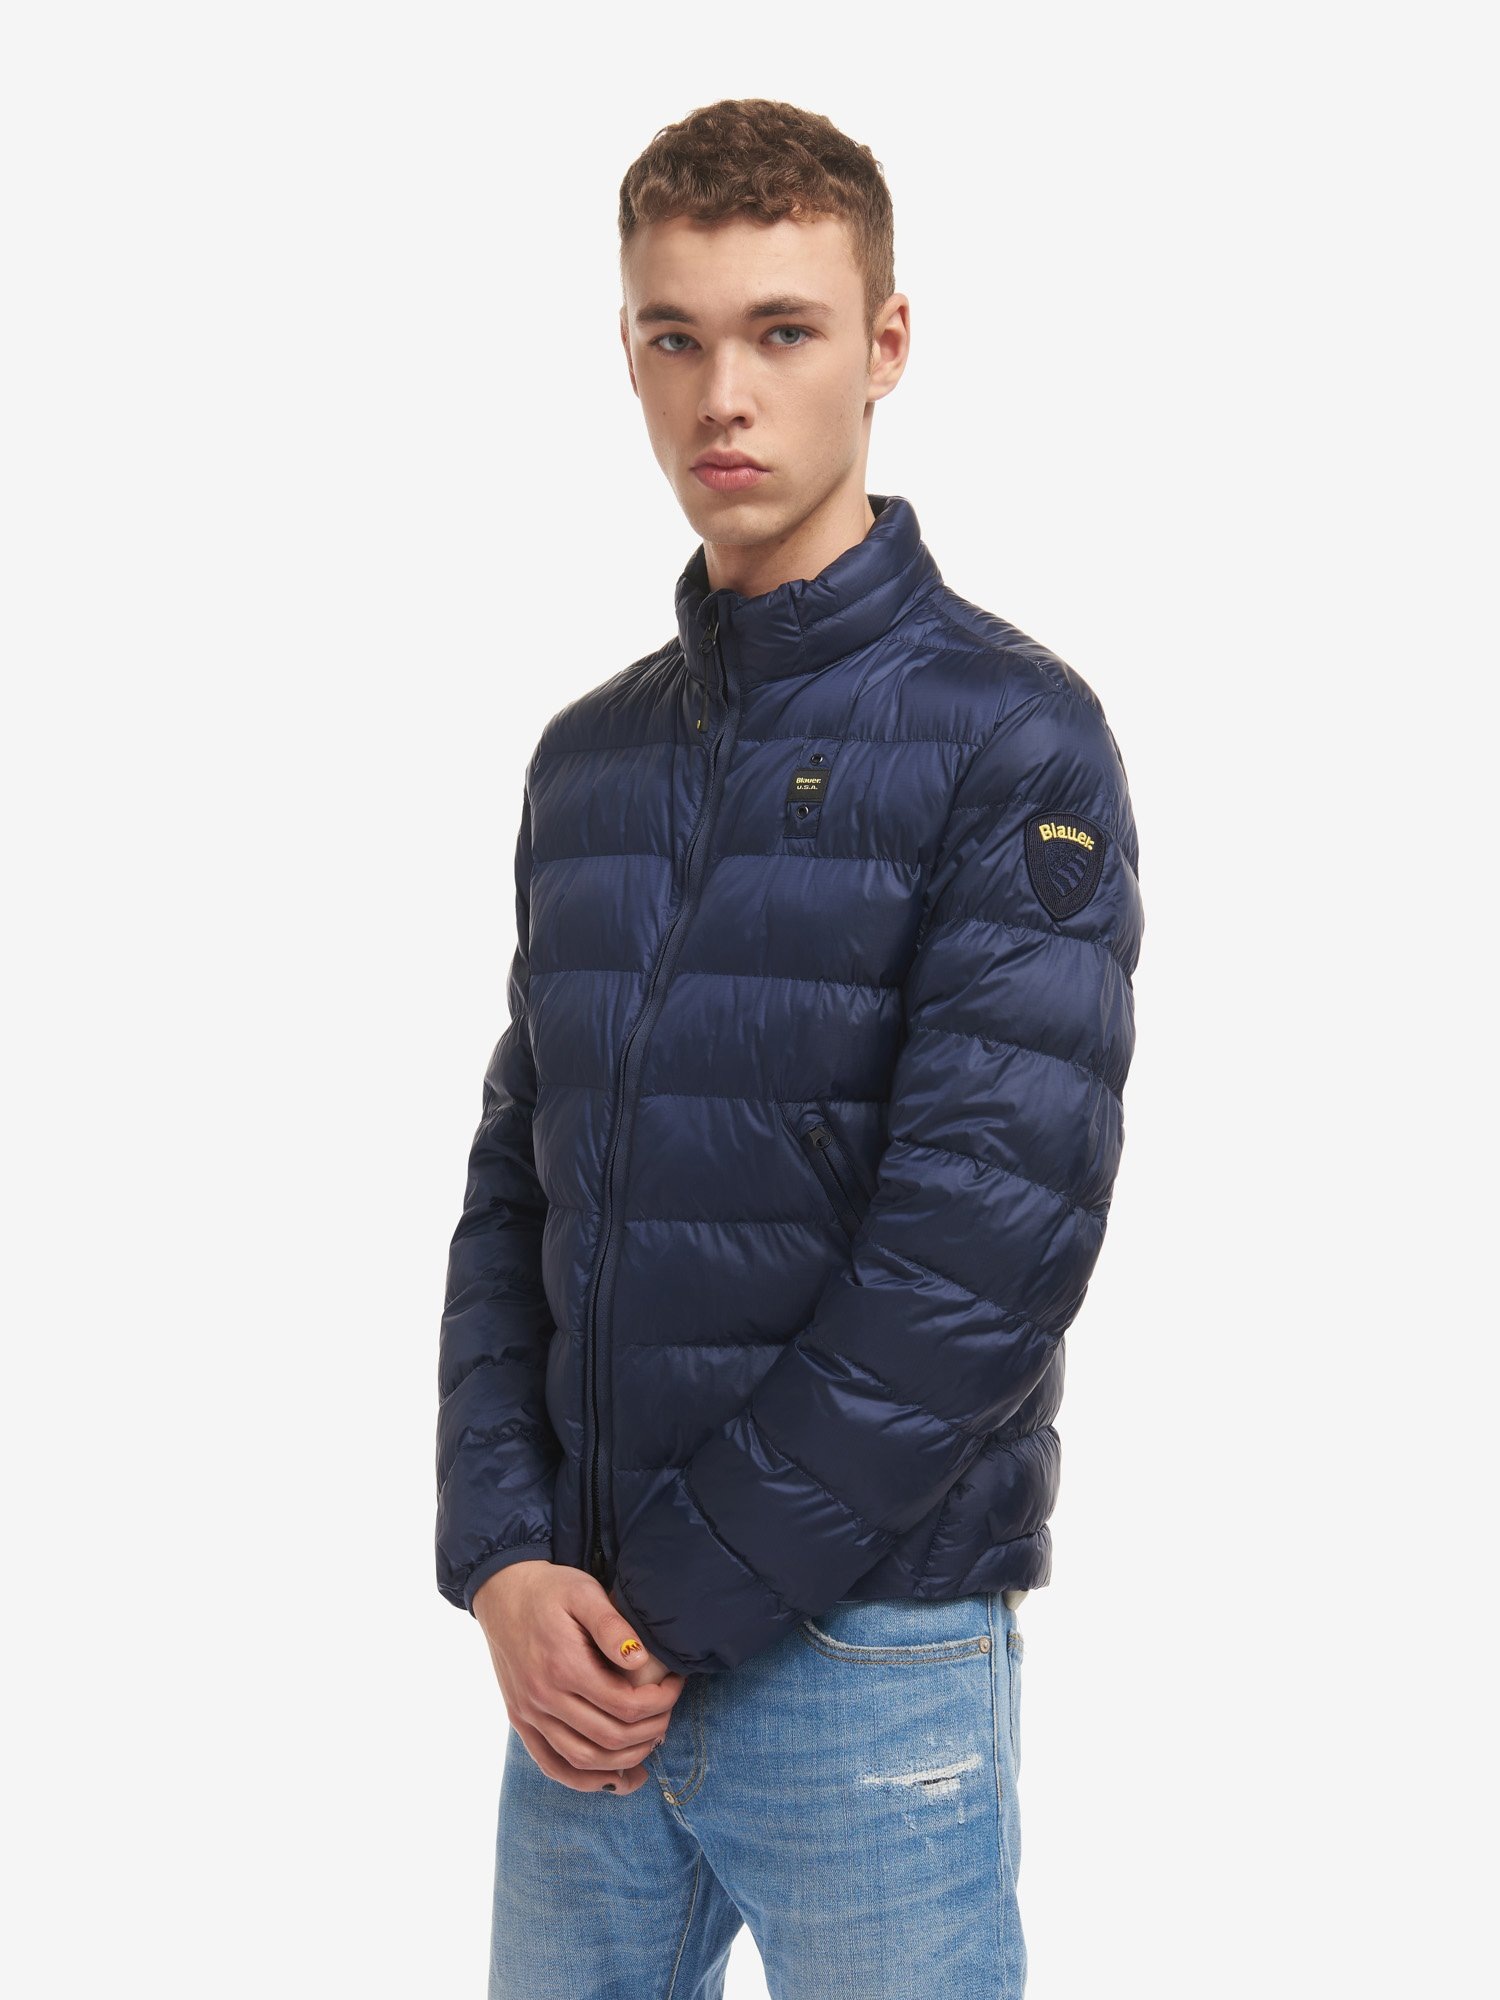 MARIO JACKET WITH LIGHTWEIGHT ECO PADDING - Blauer